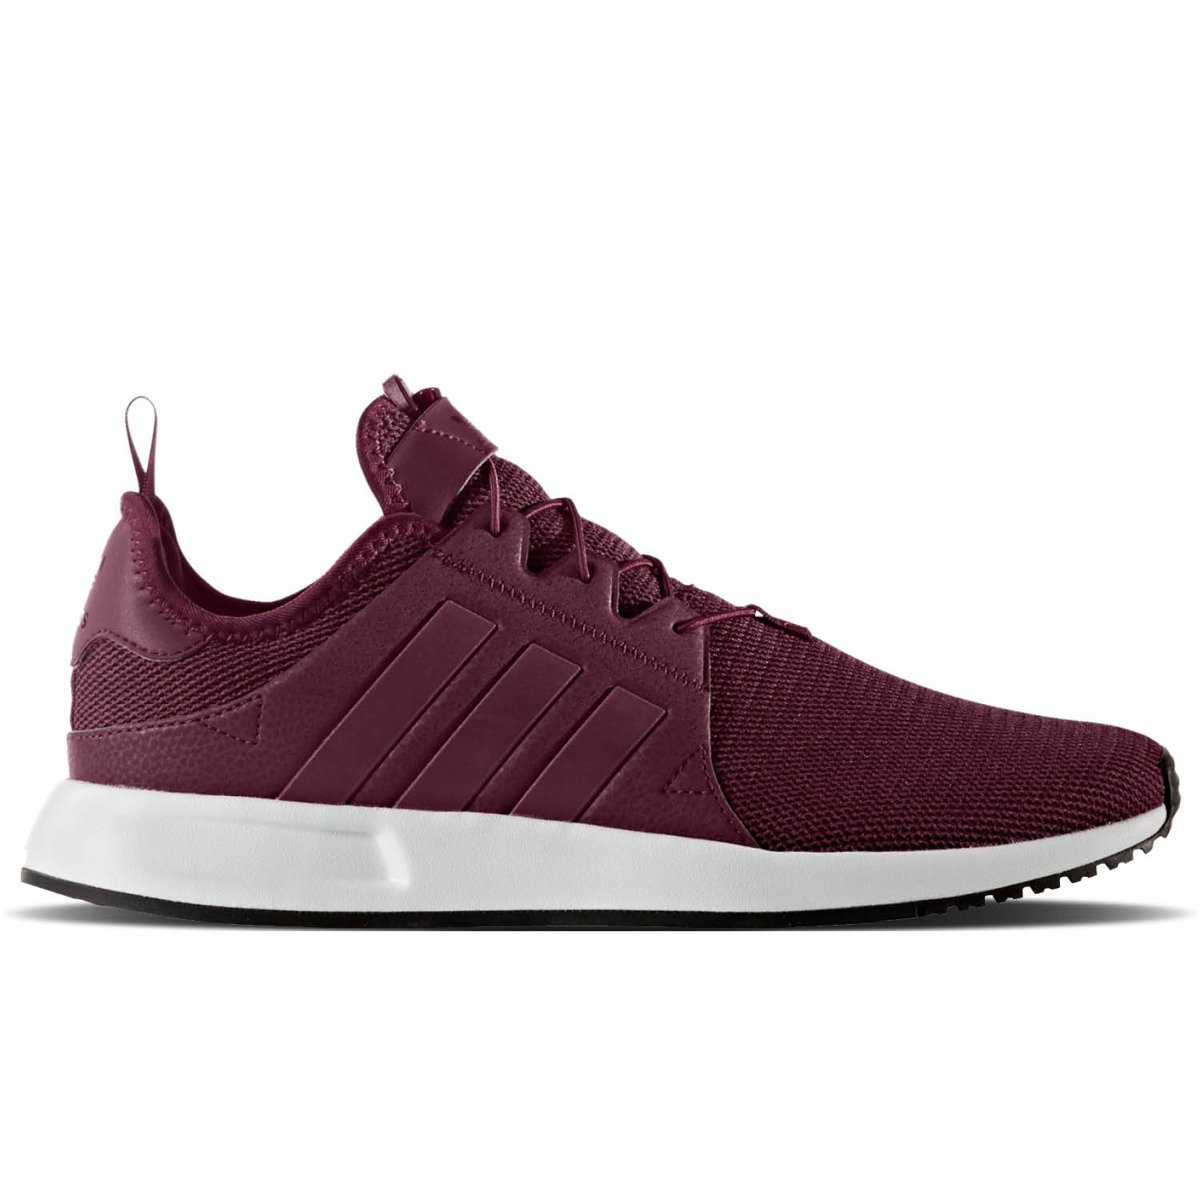 Basketball Shoes That Are Maroon